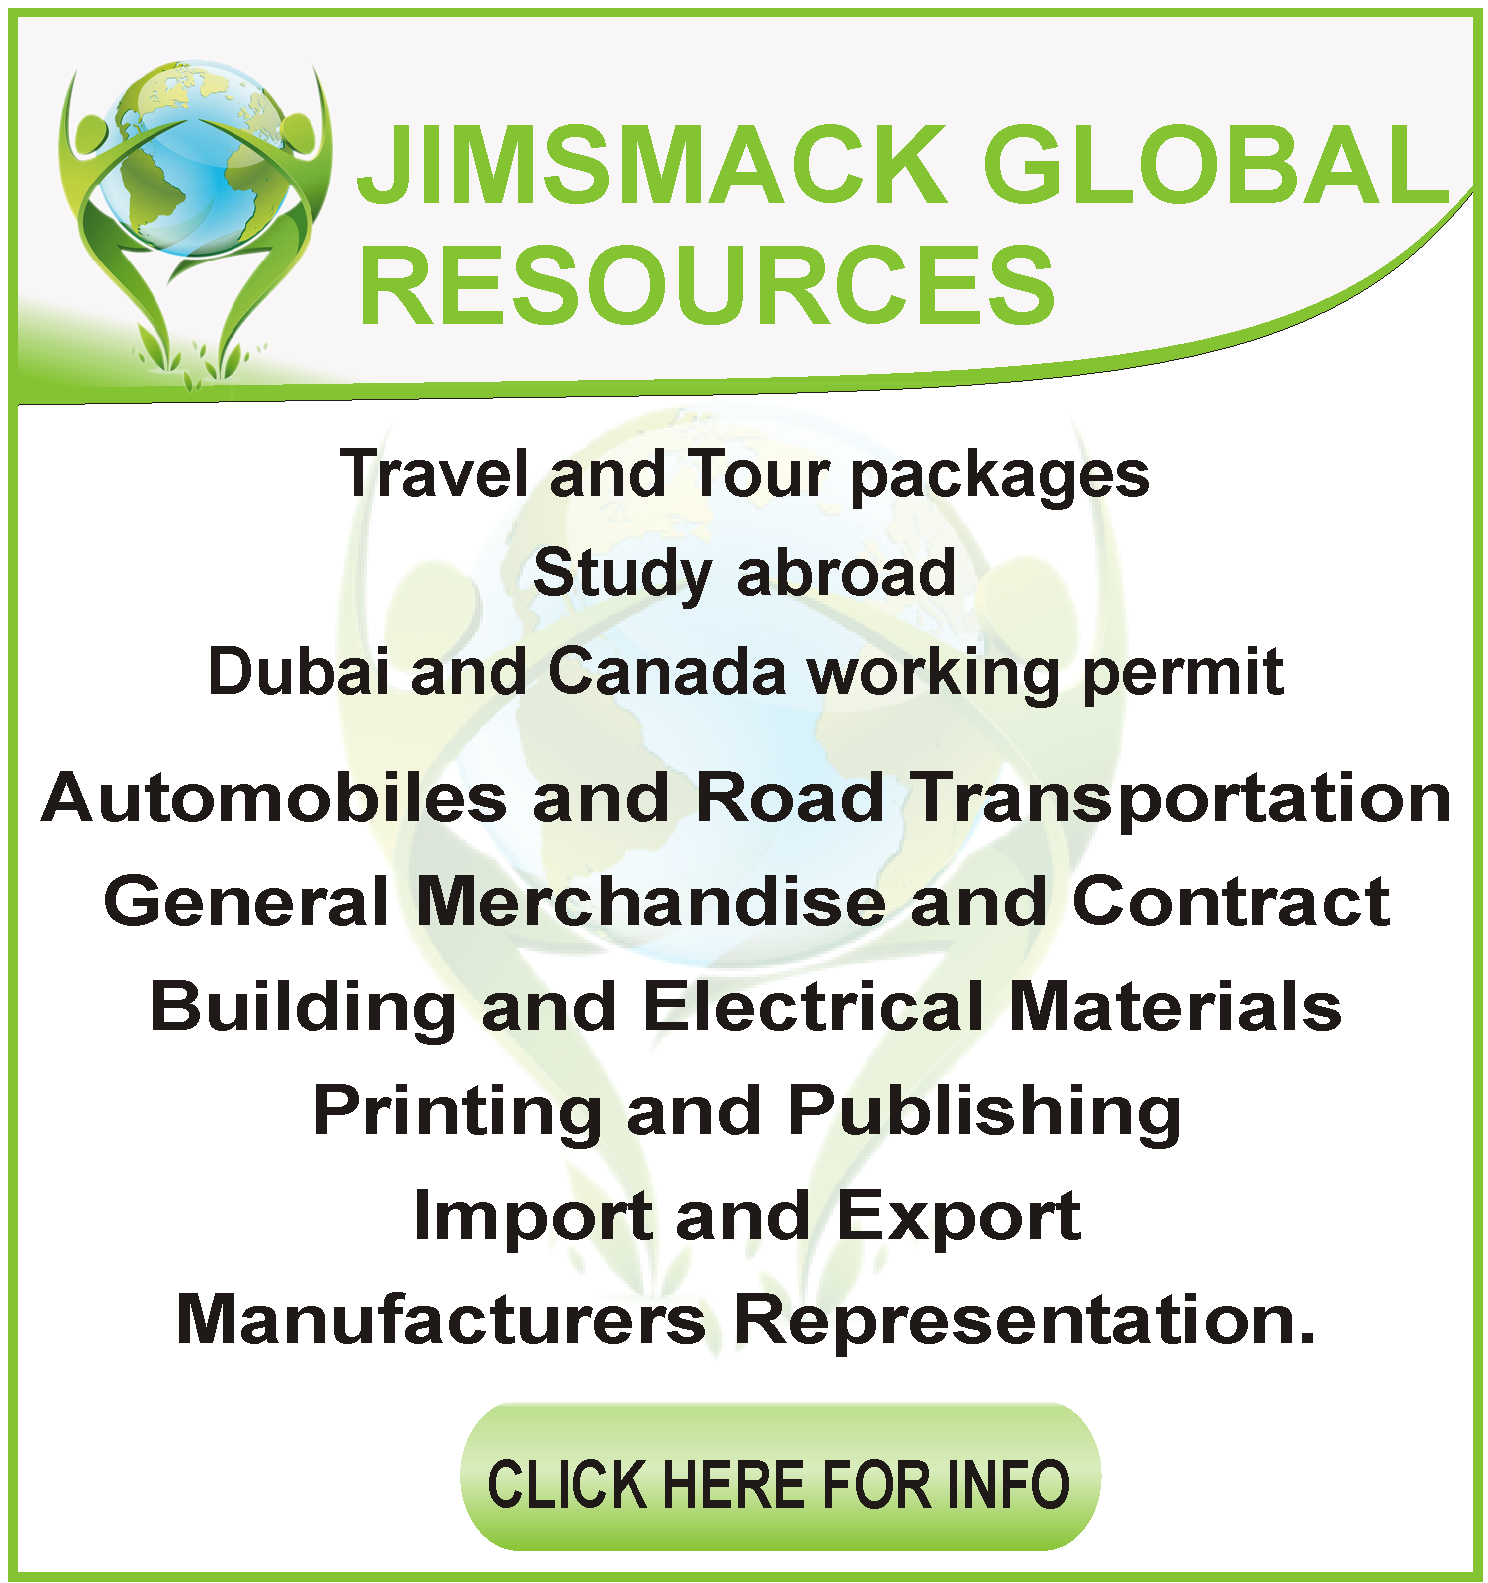 JIMSMACK GLOBAL RESOURCES